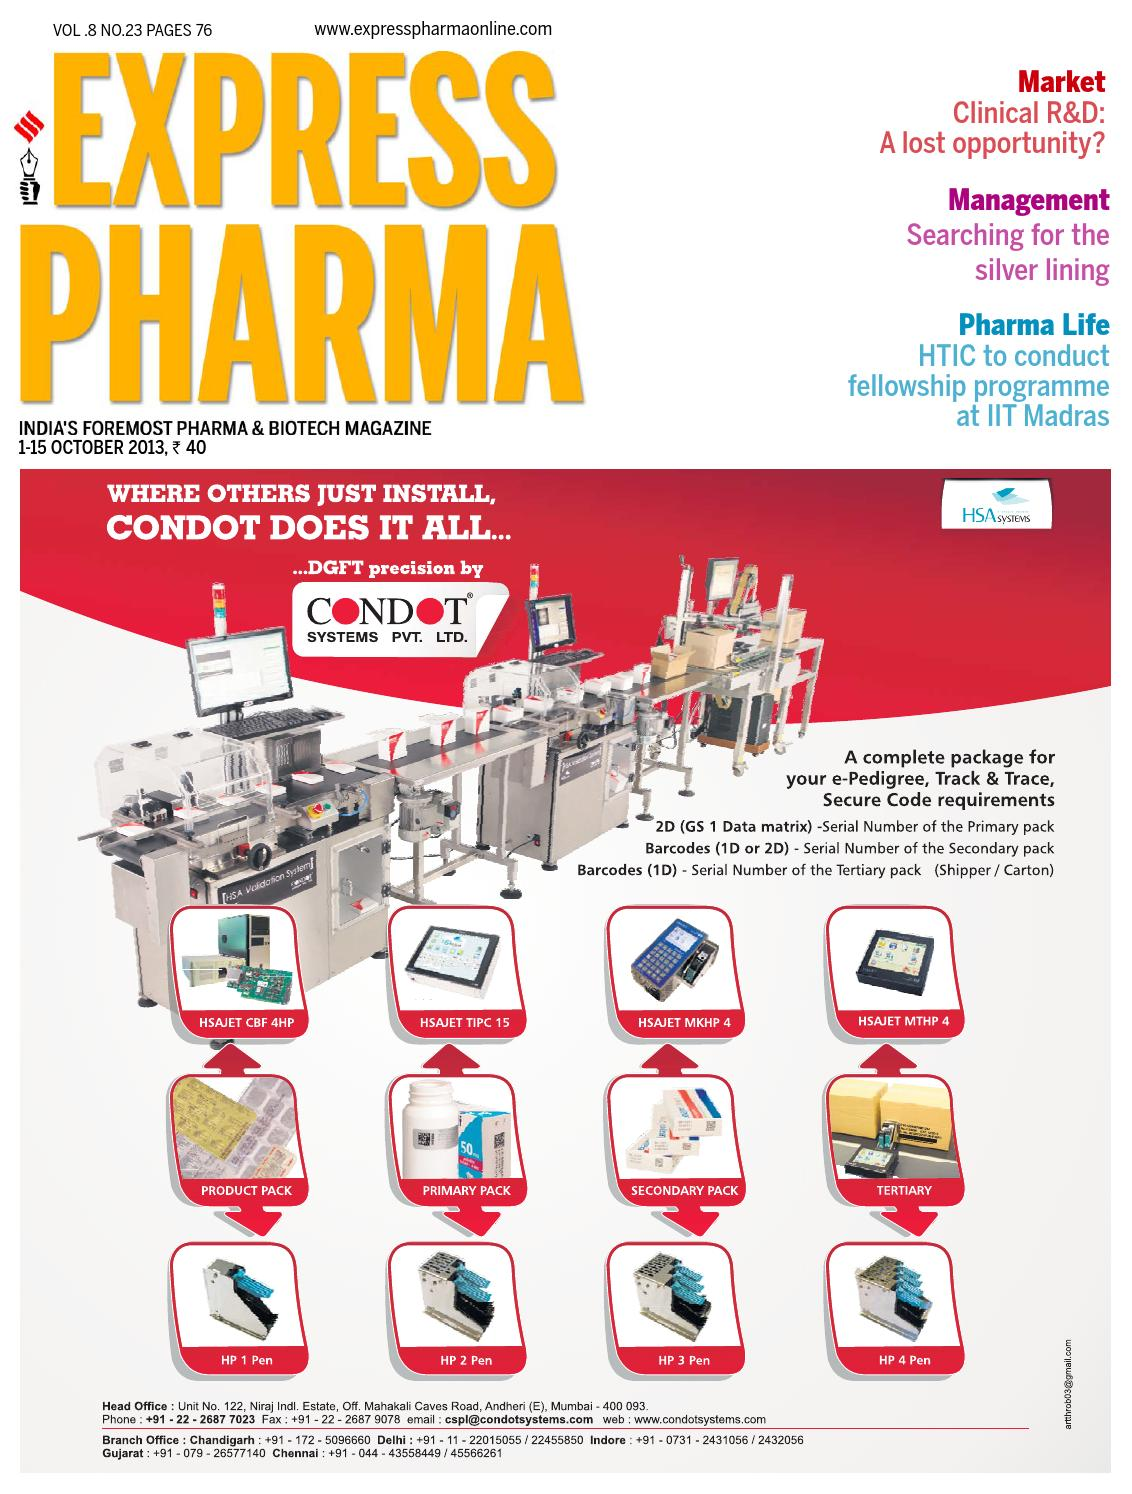 express pharma vol 11 no 21 1 15 2016 by n express pharma vol 11 no 21 1 15 2016 by n express issuu